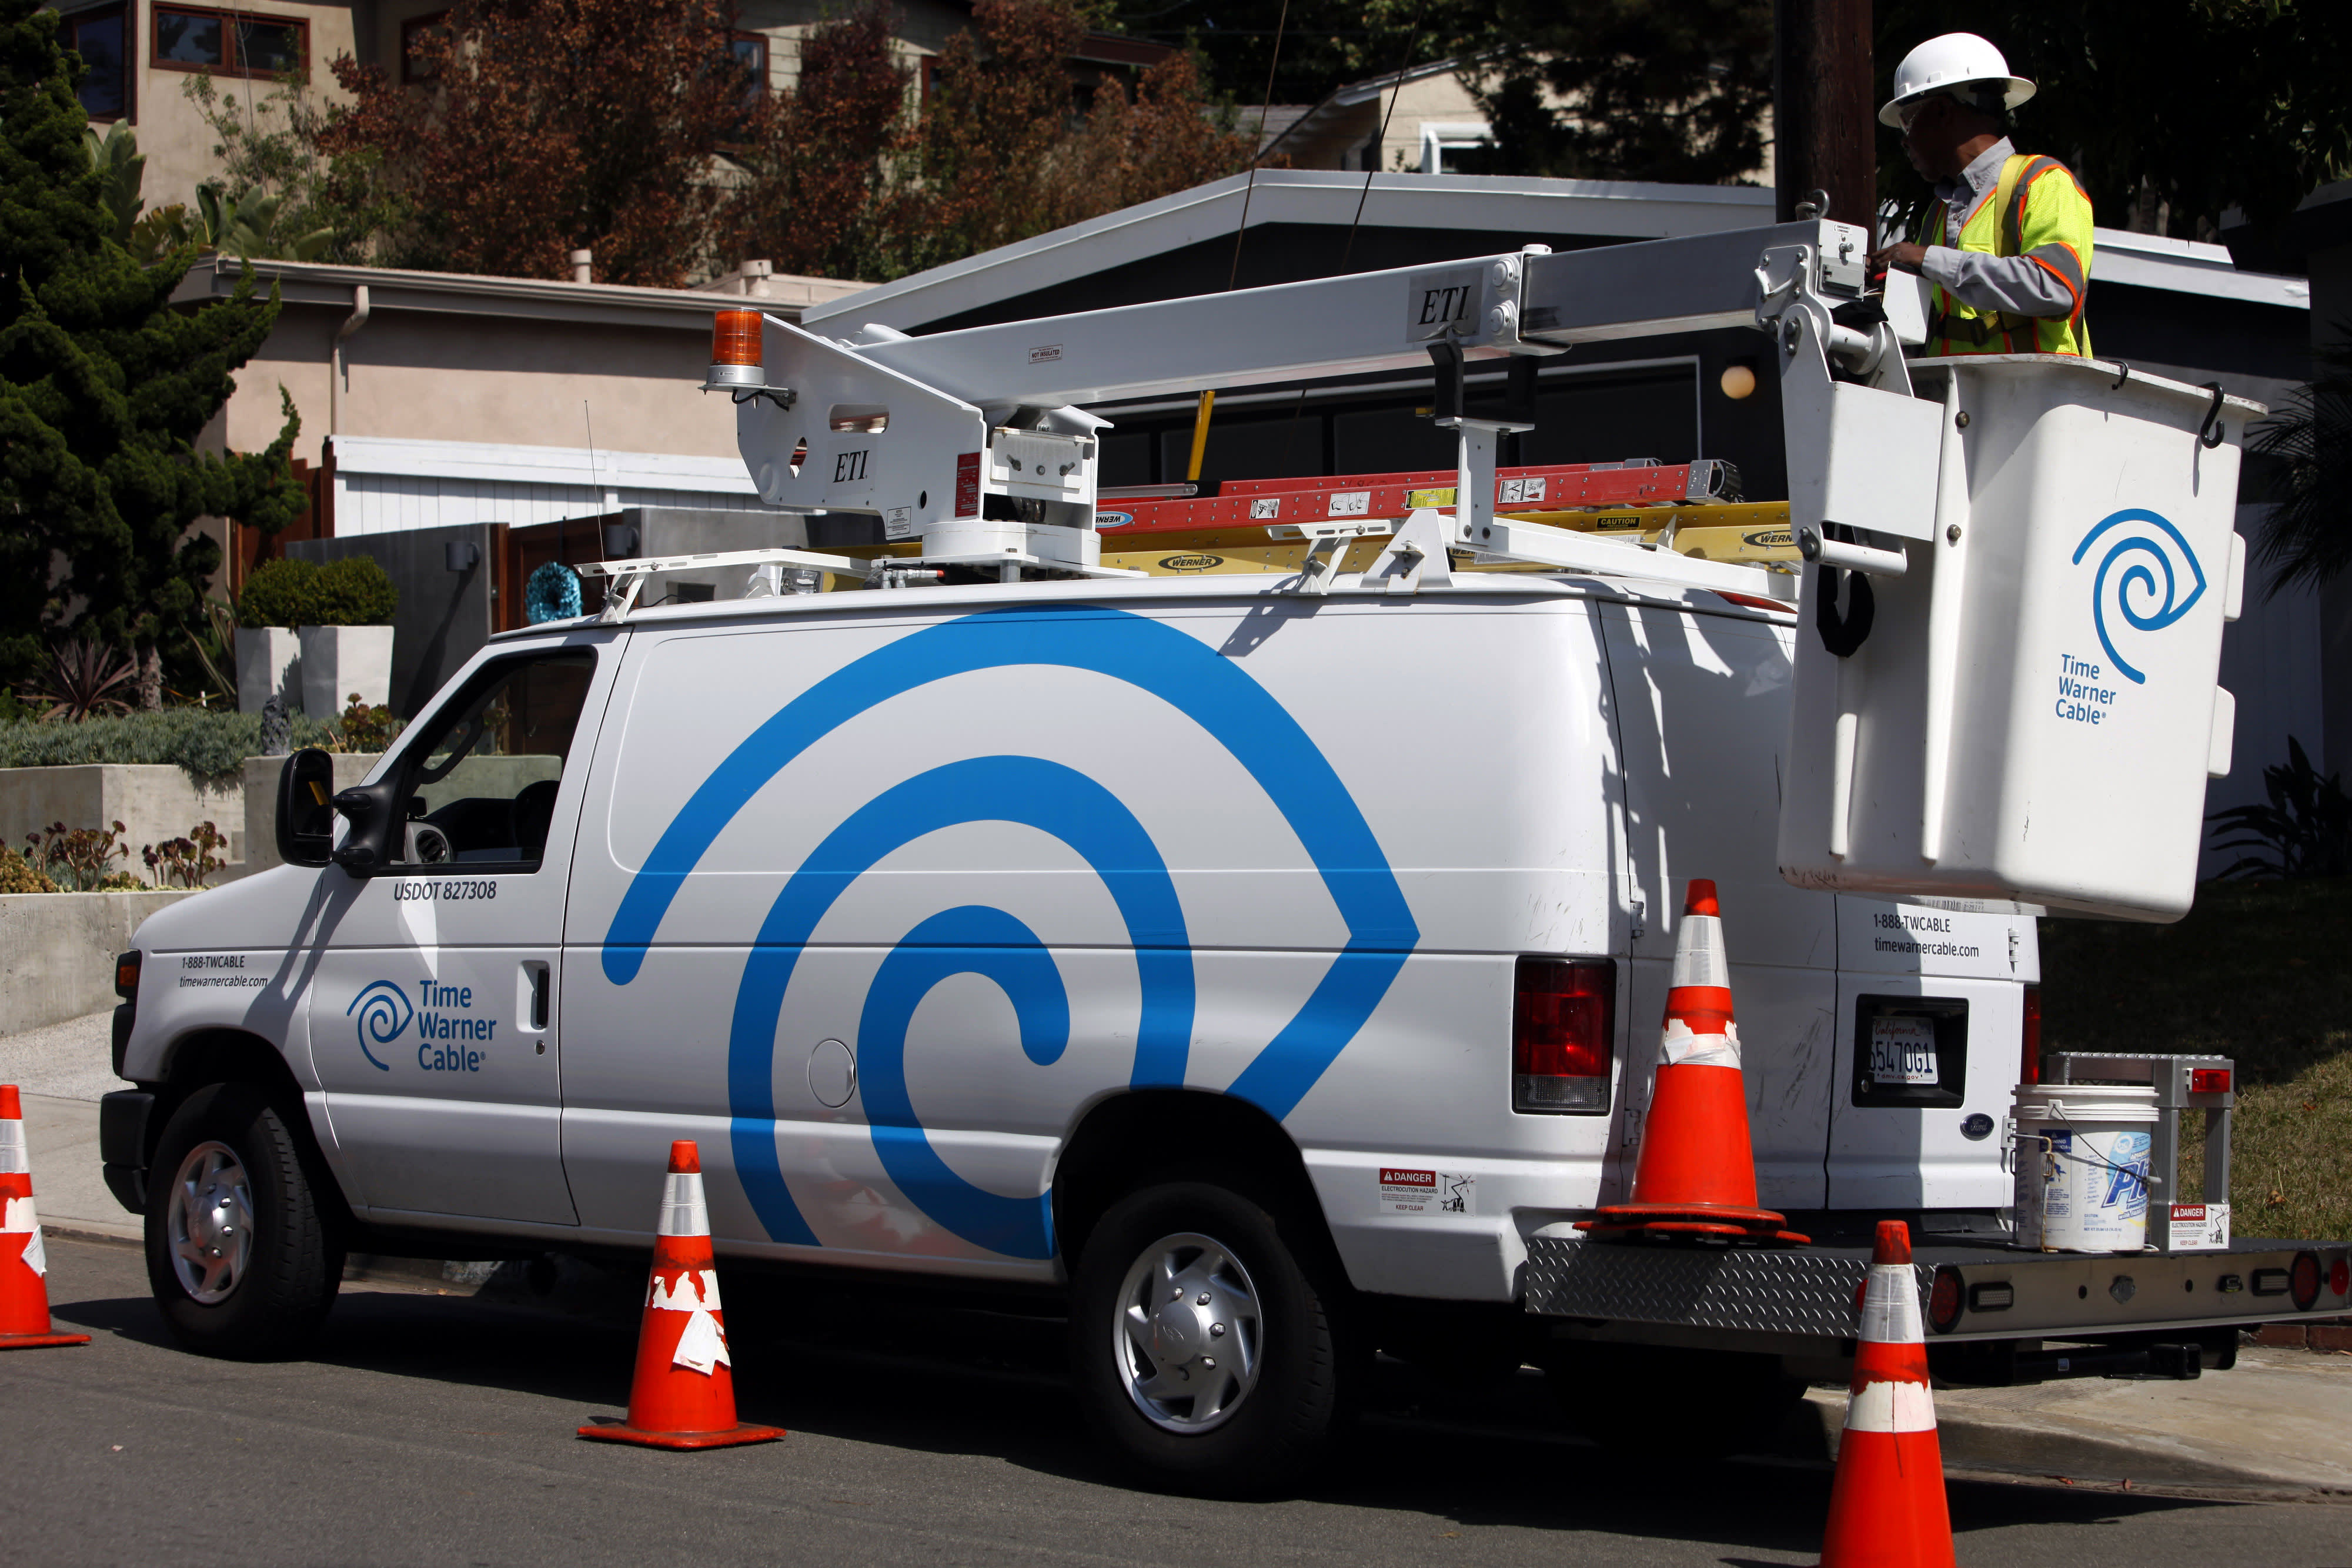 time warner cable technician